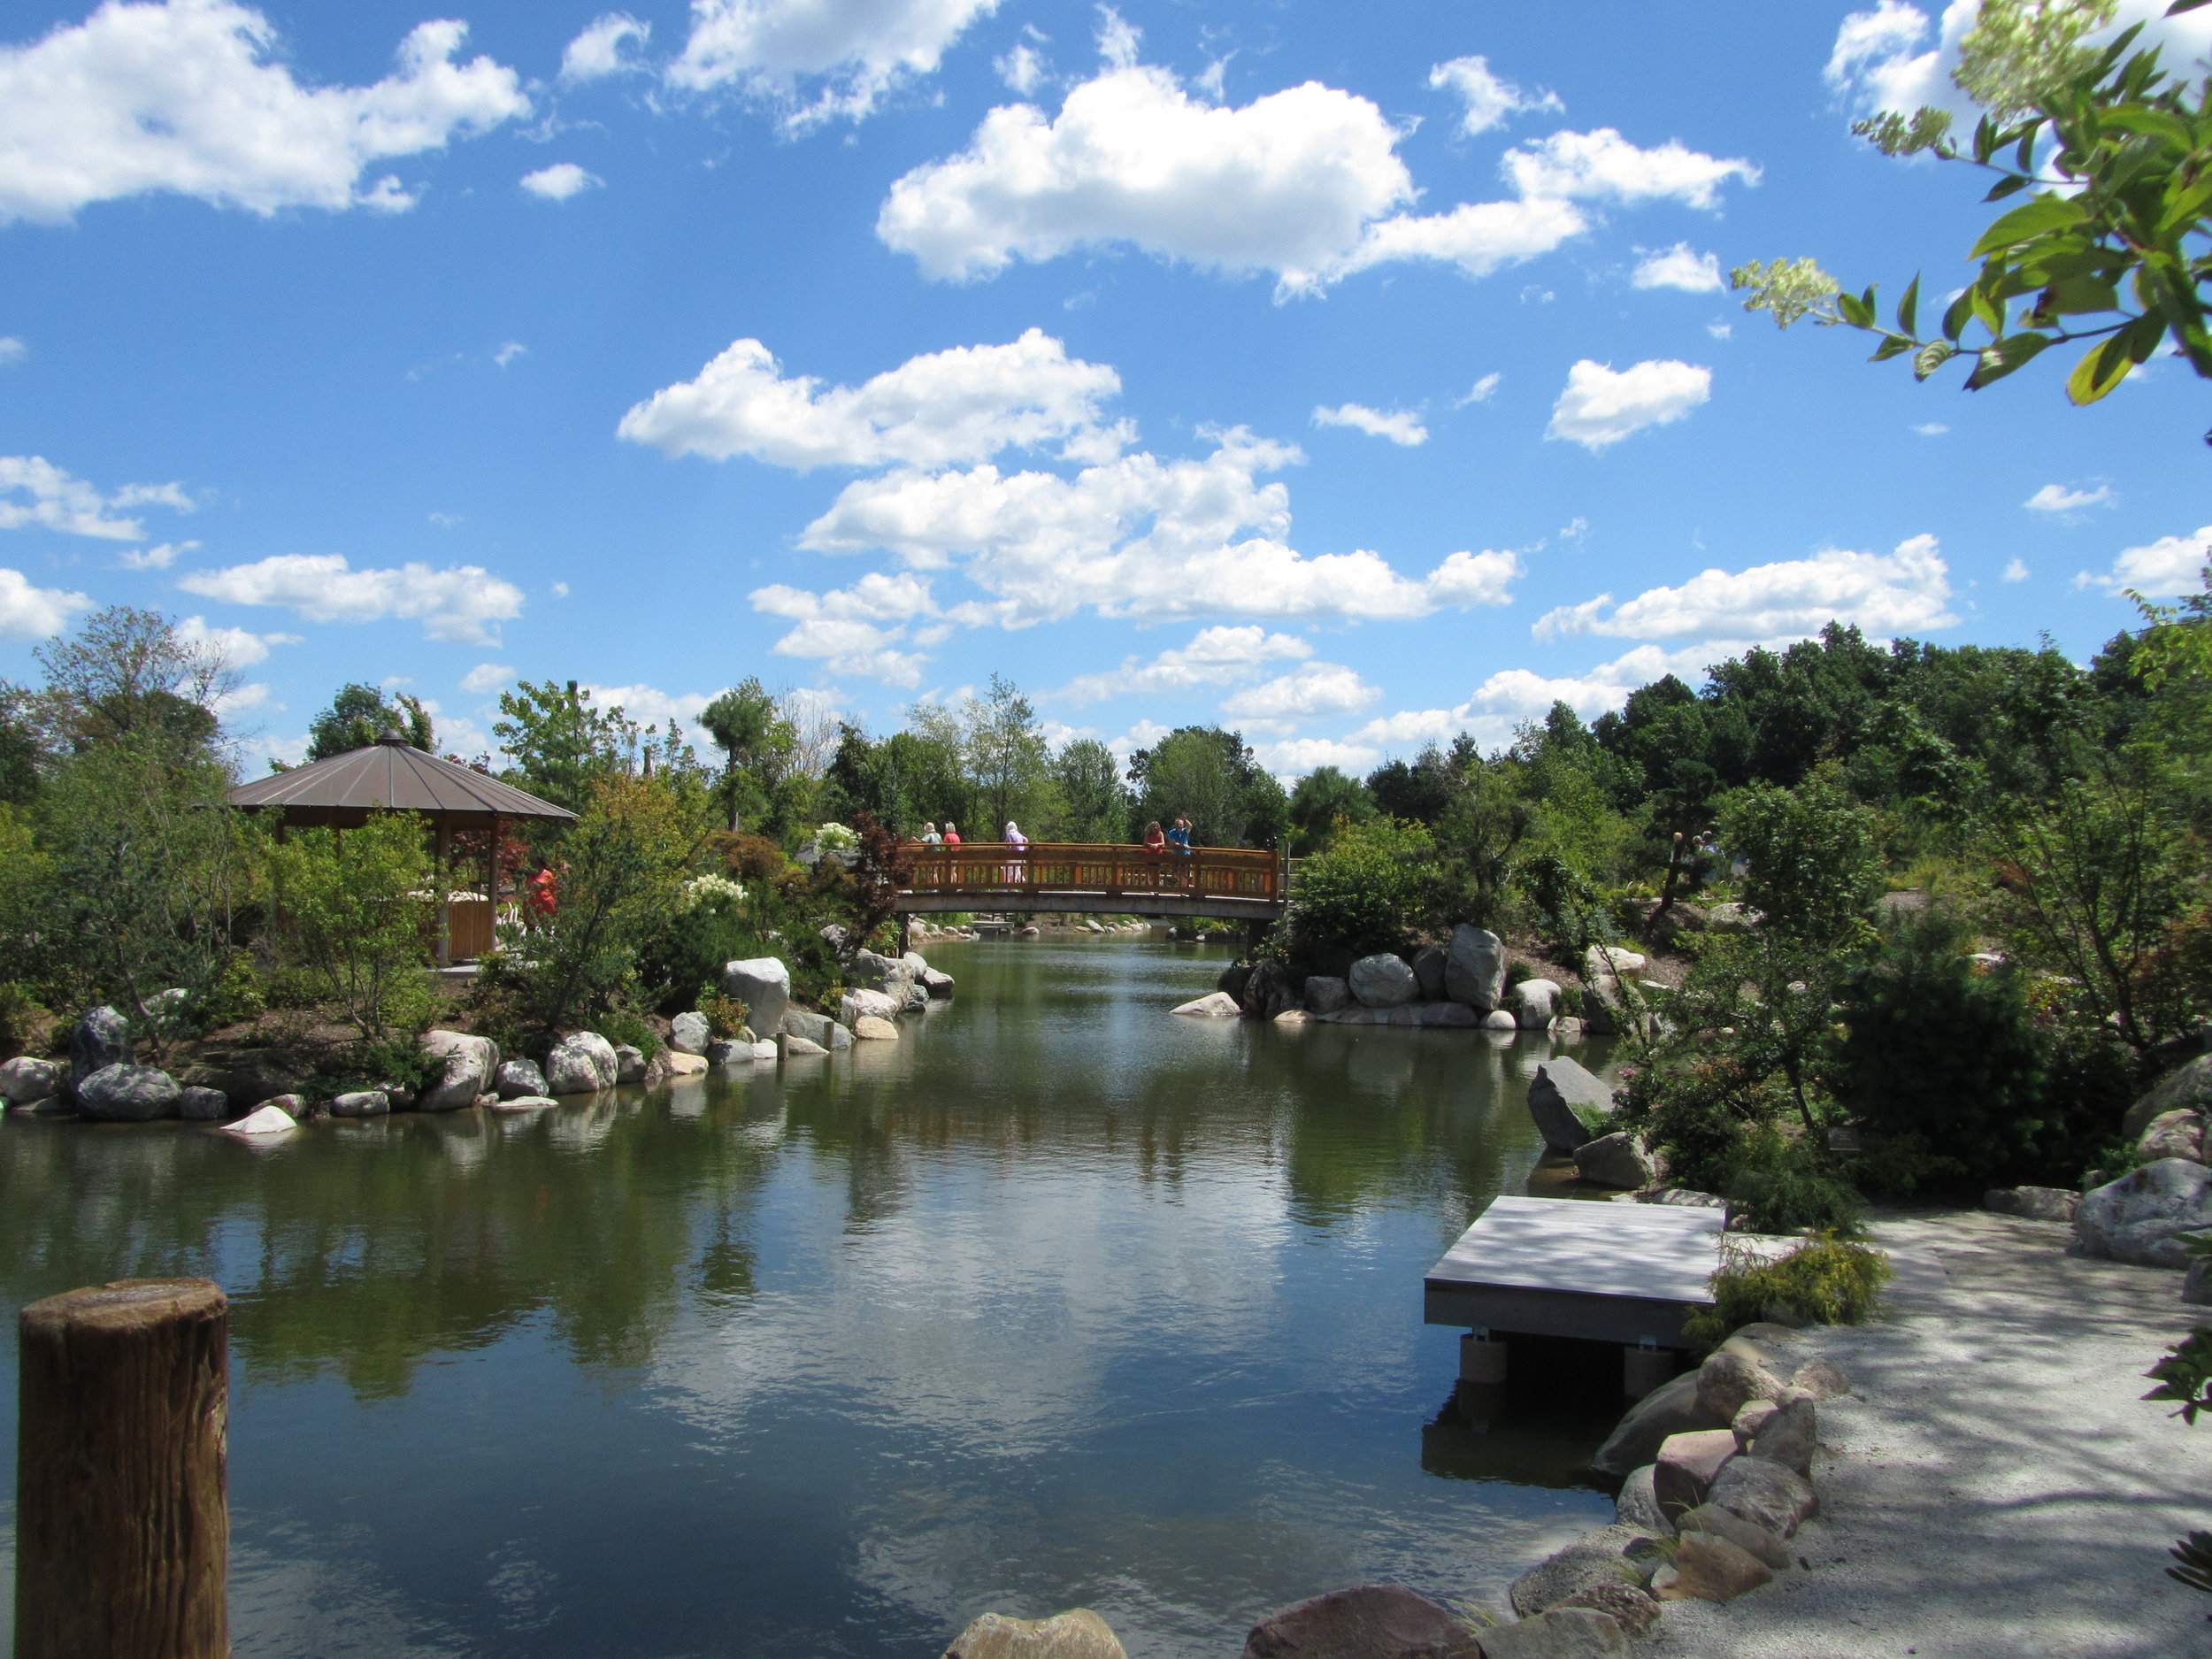 Japanese Garden, Grand Rapids, Michigan, August 2015